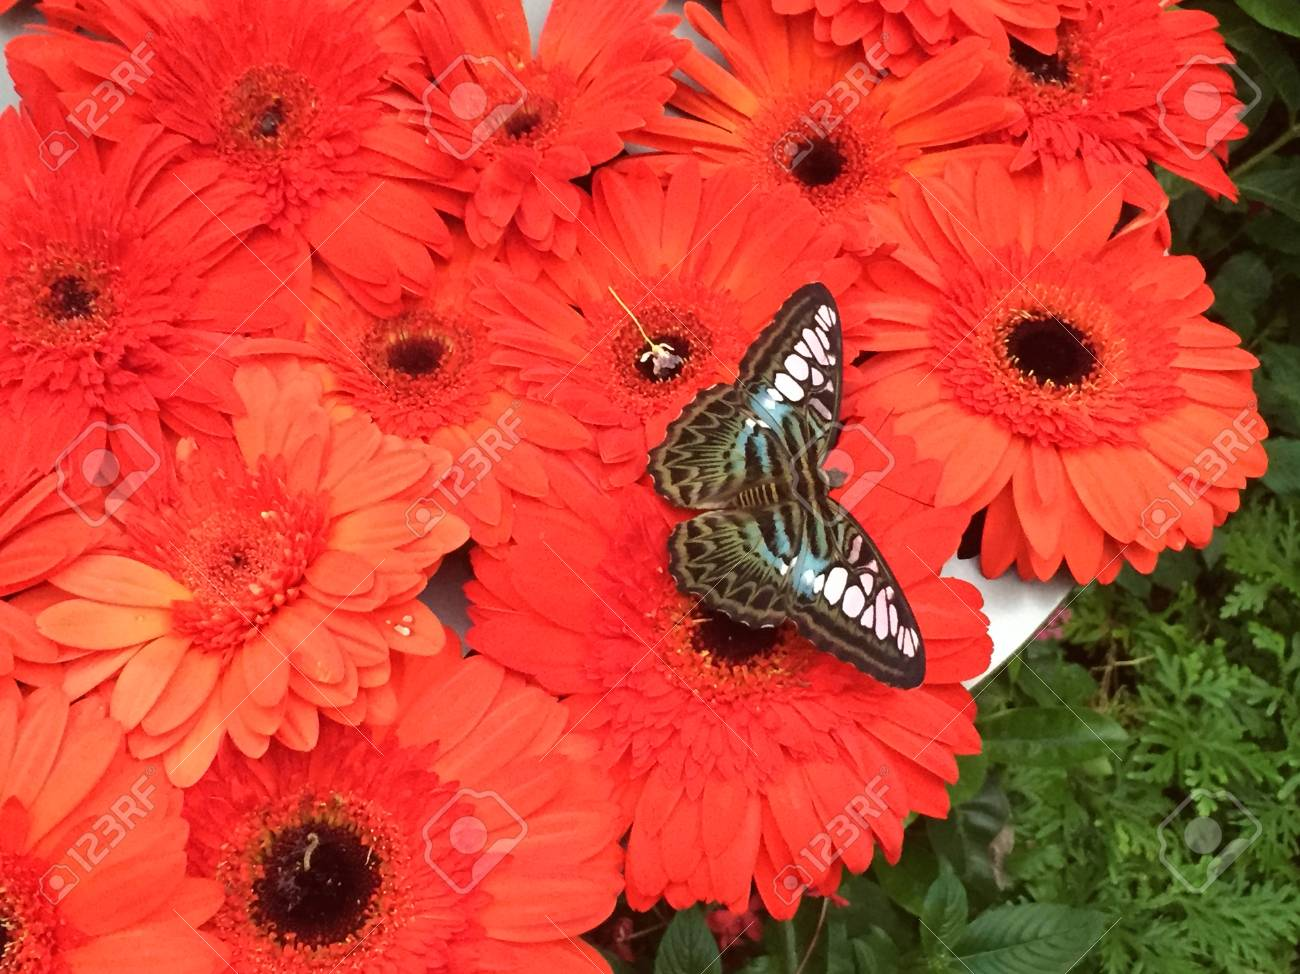 A black butterfly with blue and pink markings is resting on a cluster of bright red flowers. The flowers have hundres of petals, and black centers. The butterfly's wings are outstretched. Stock Photo - 91698483